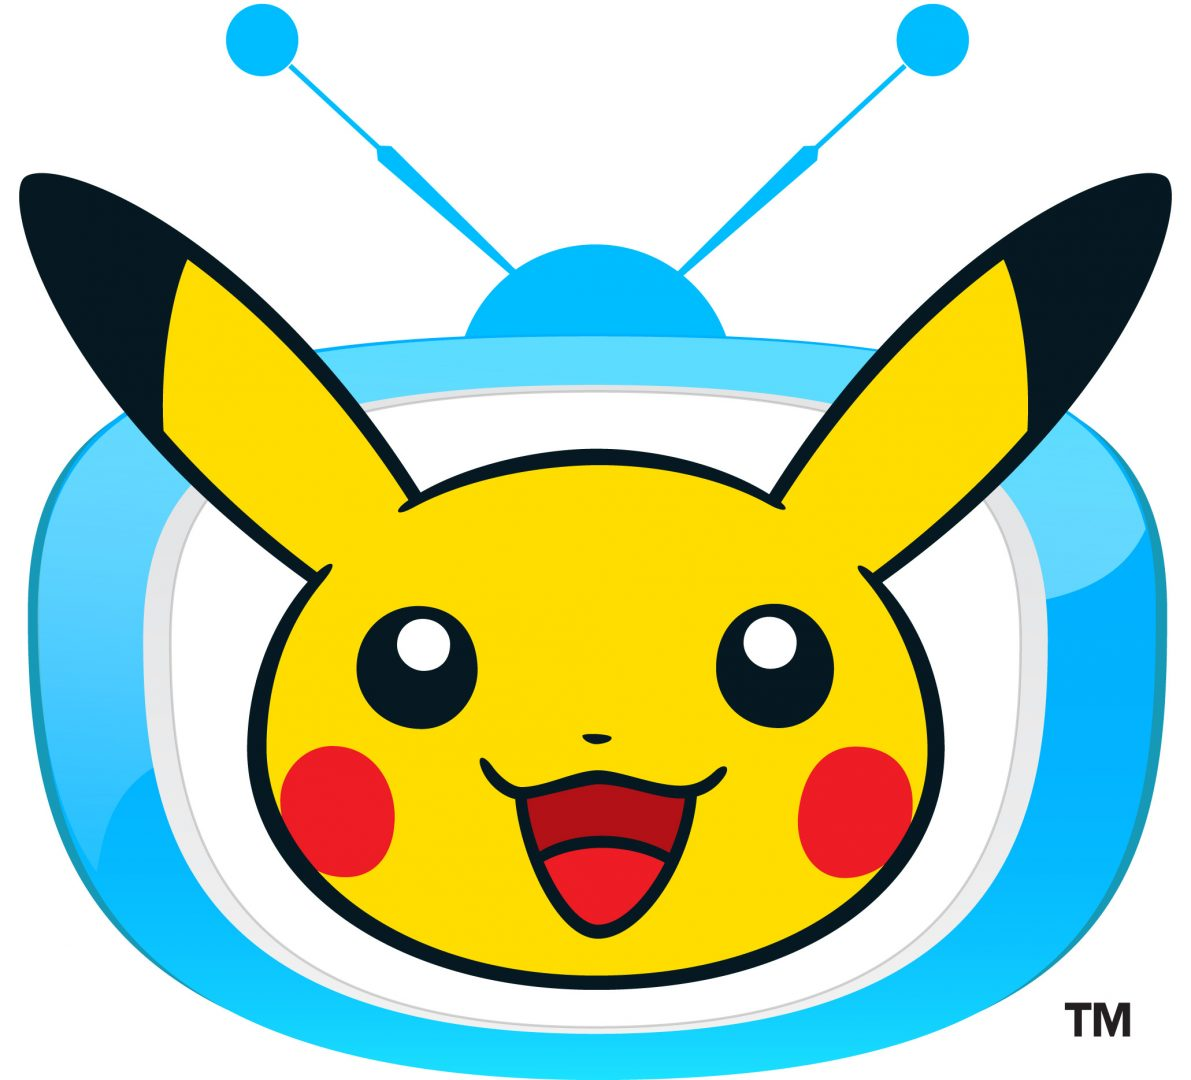 Pokémon TV Relaunched with New Features